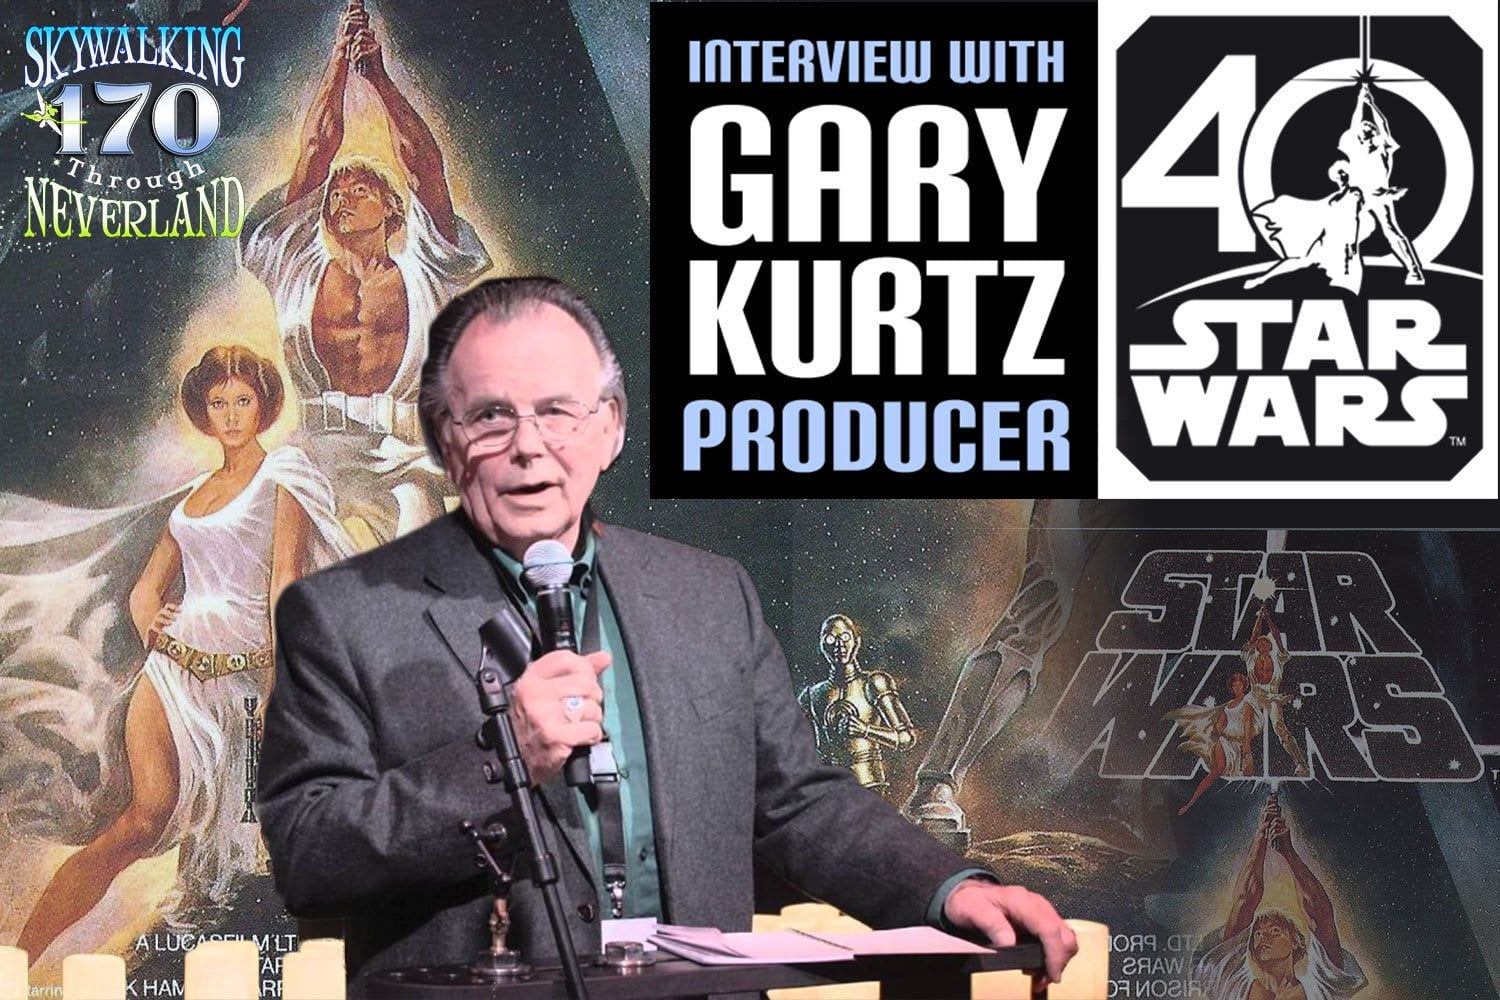 Show-Art-Gary-Kurtz skywalking through Neverland